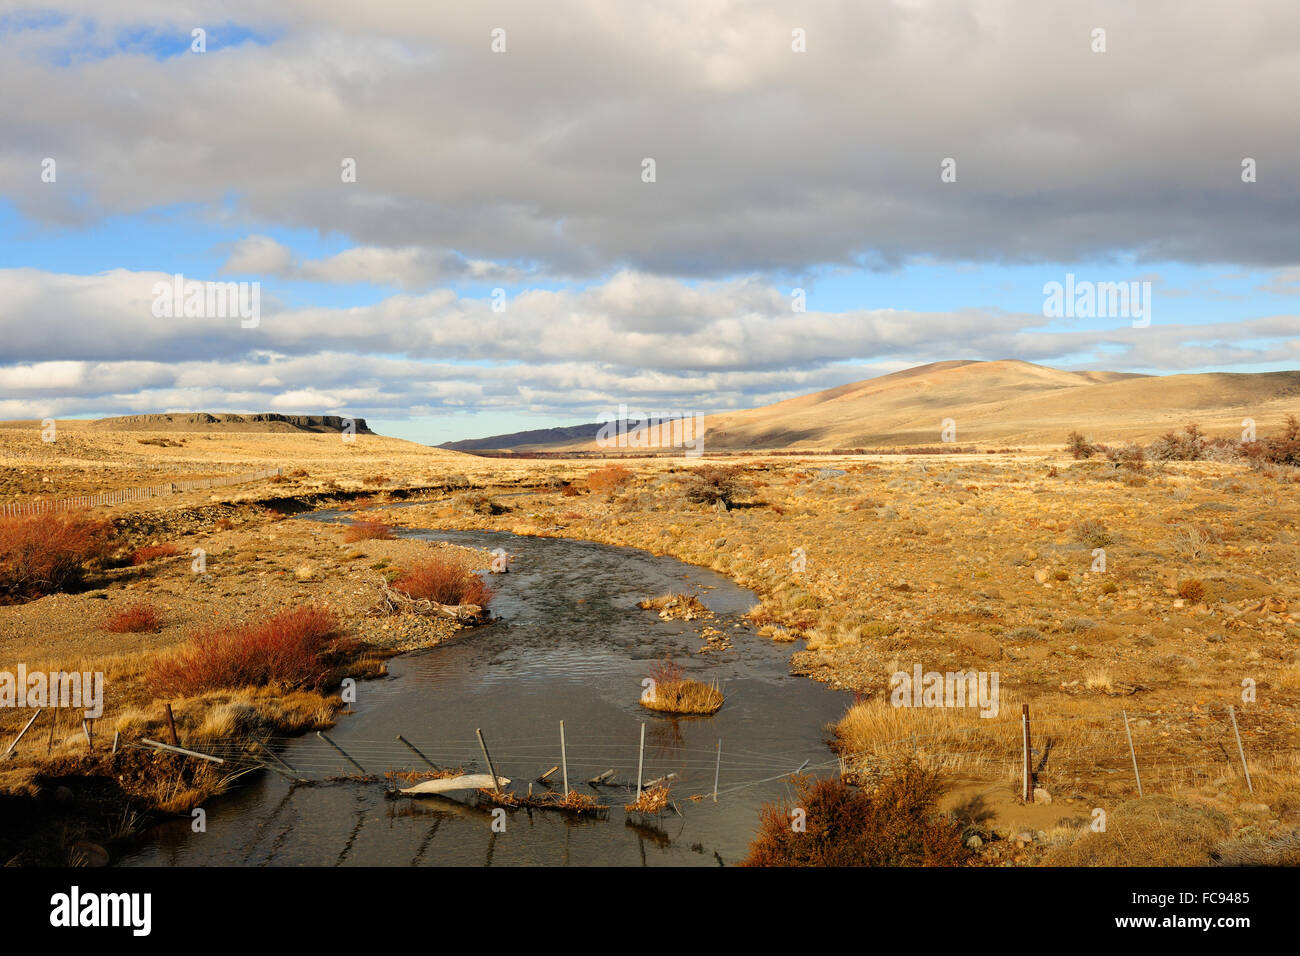 Patagonic landscape, Patagonia, Argentina, South America - Stock Image